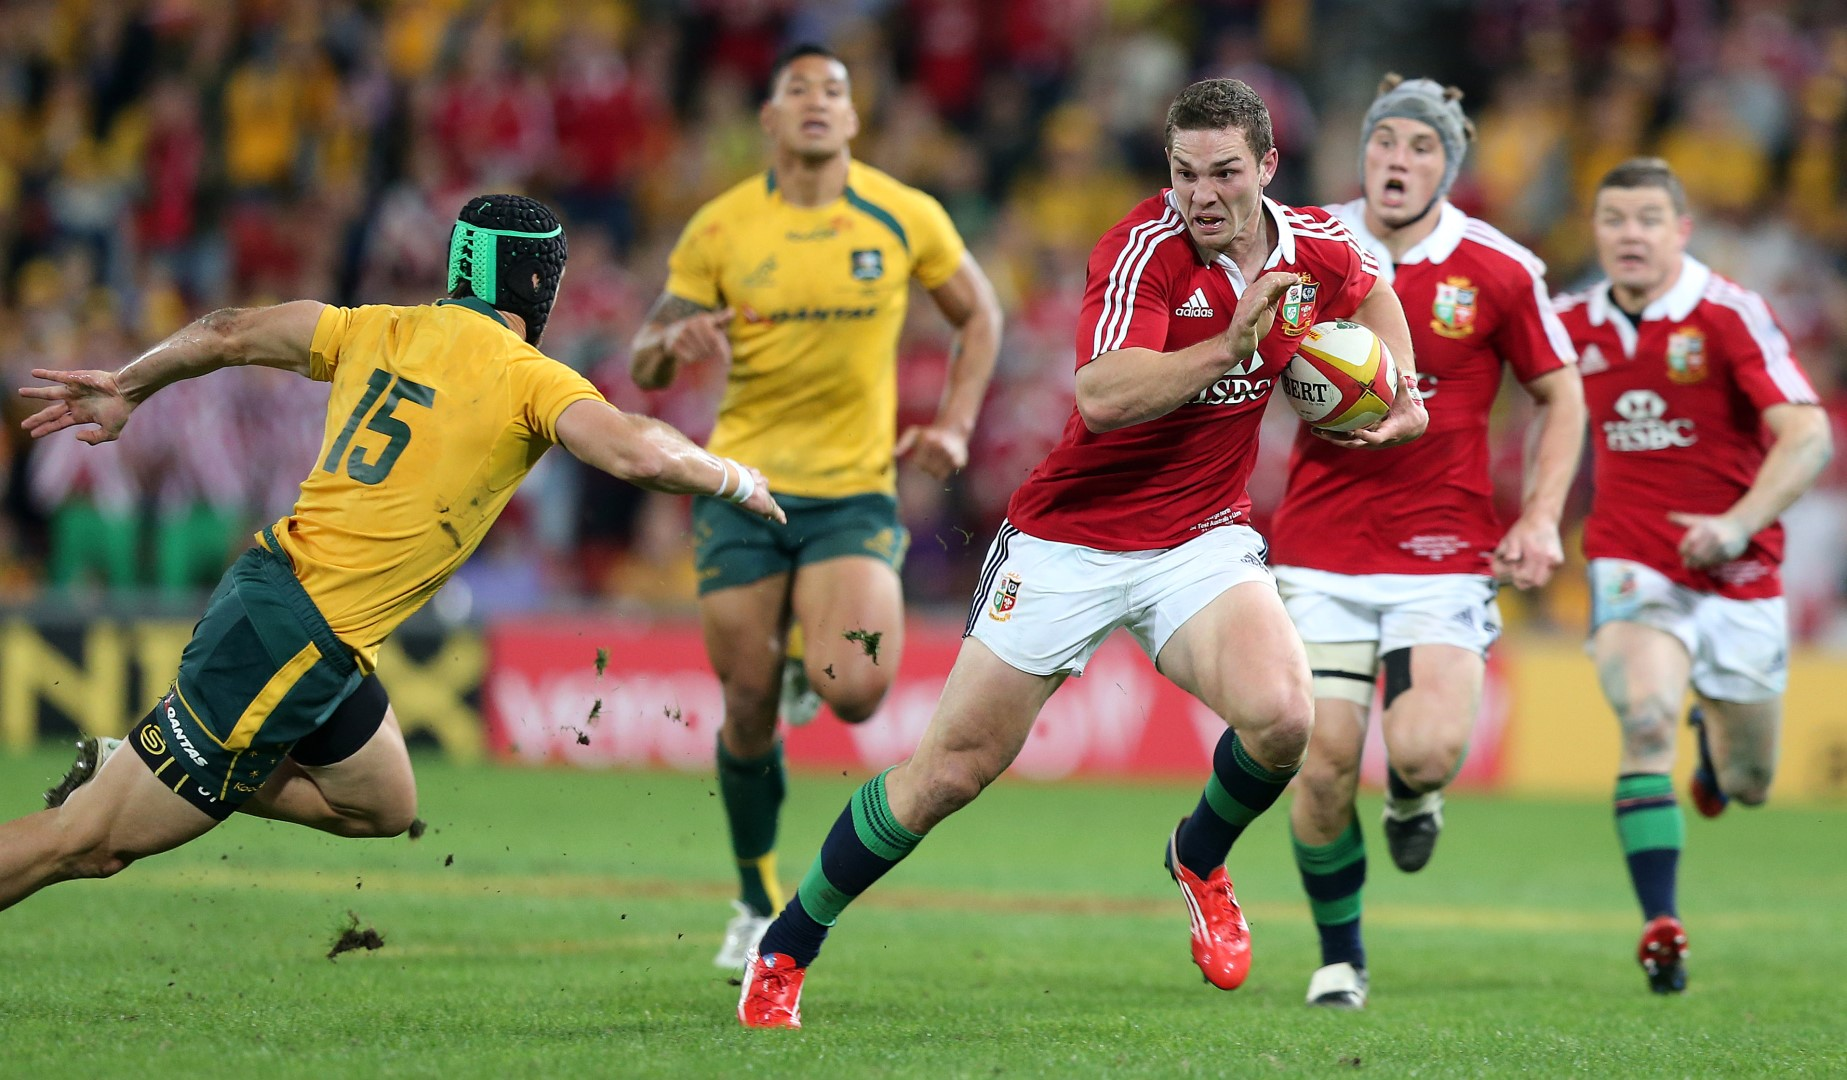 On This Day: North stars in the 2013 Lions first Test success